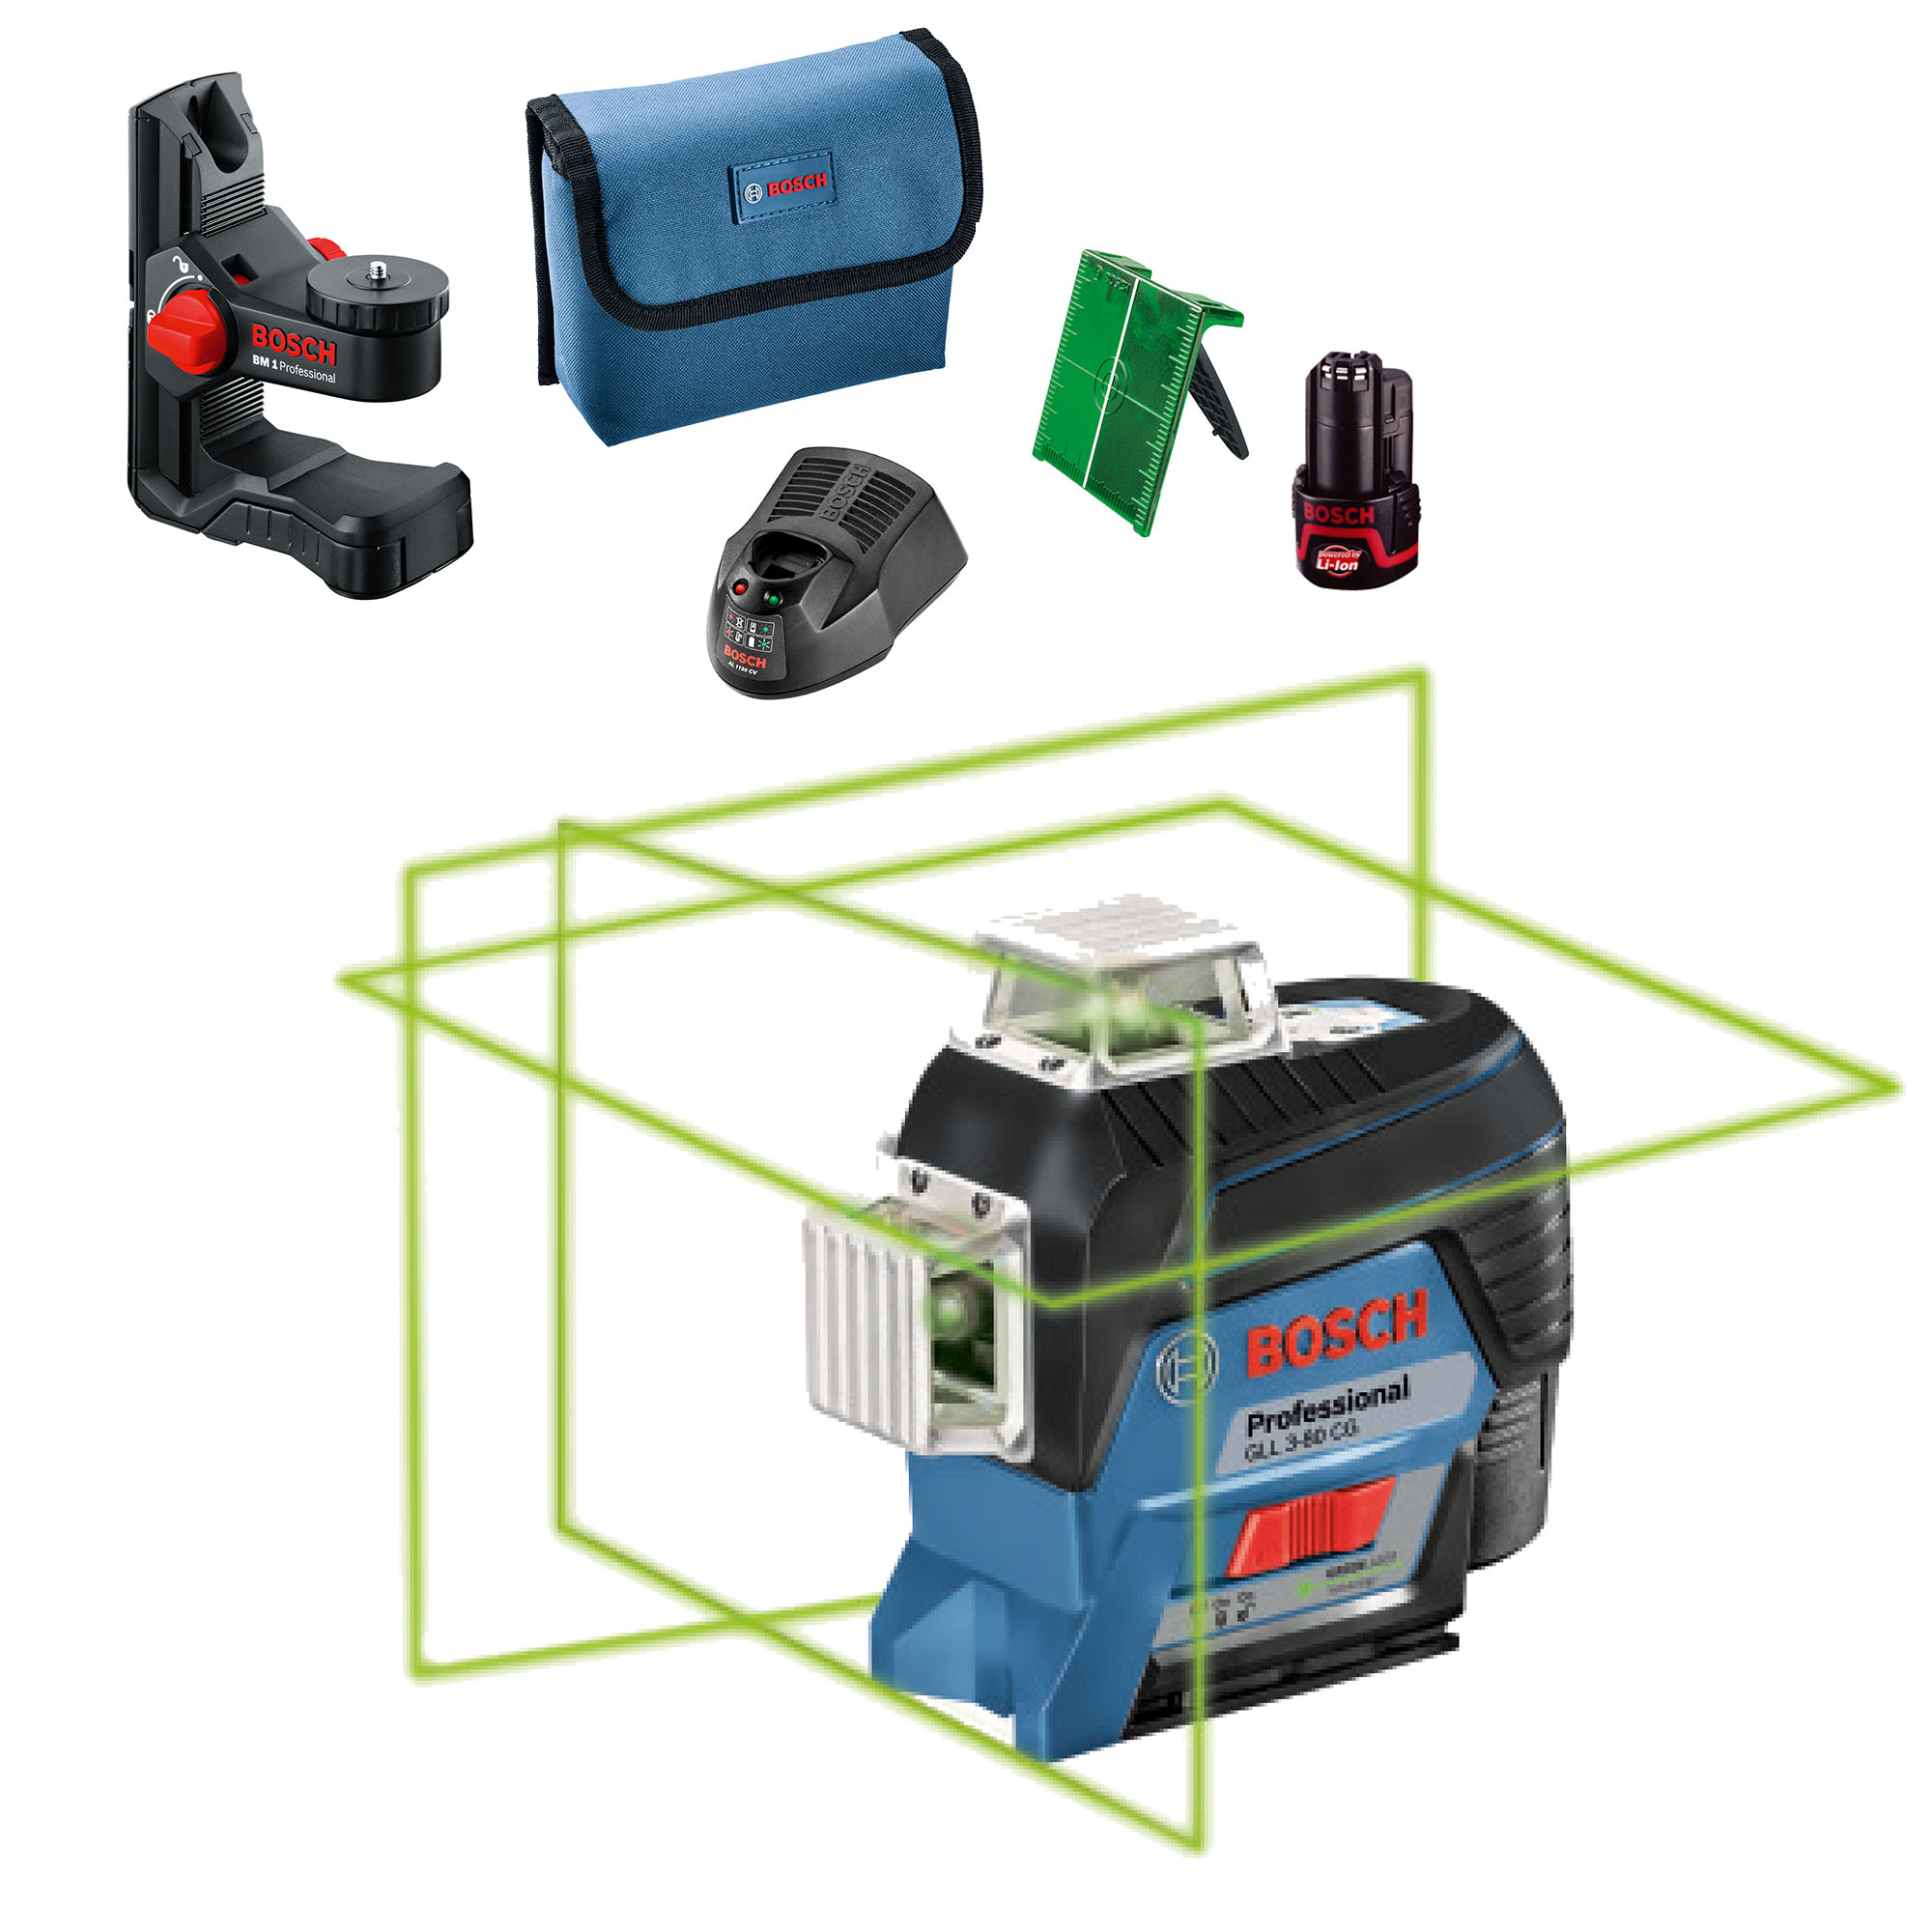 bosch gll 3-80cg | self-levelling 360° connected green beam laser